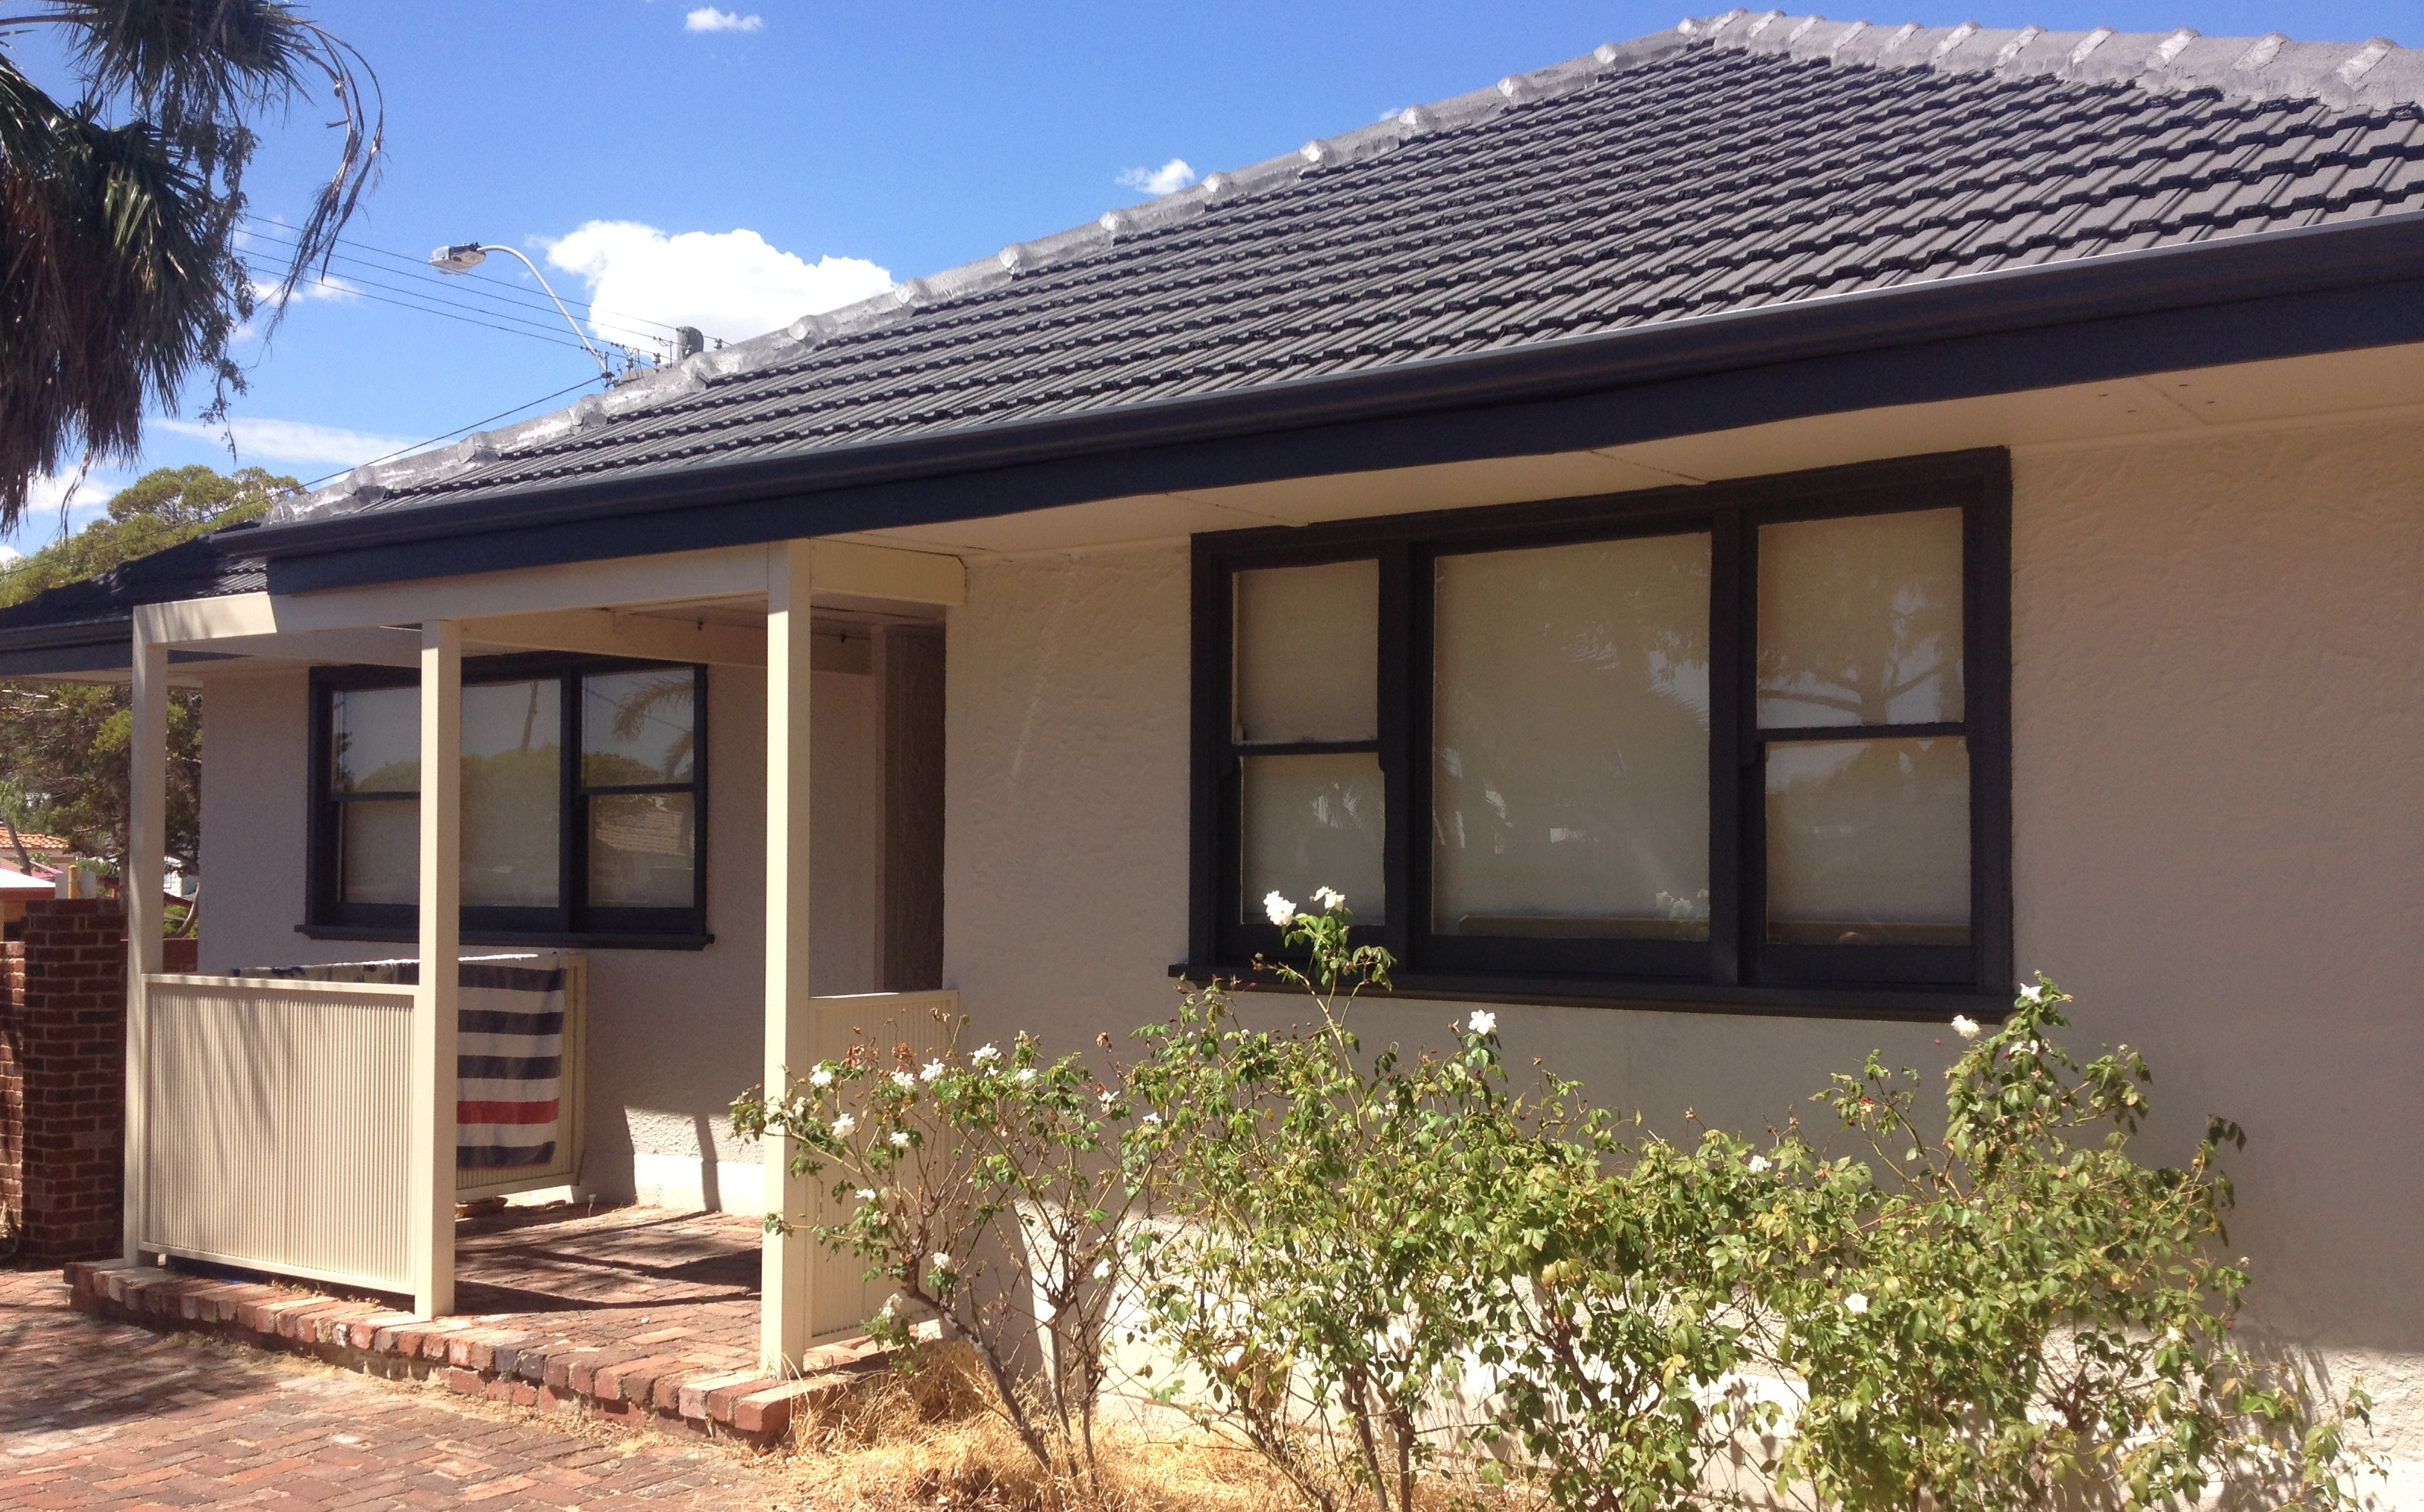 Exterior shot of older residential home painted in cream with dark grey window trims and roof